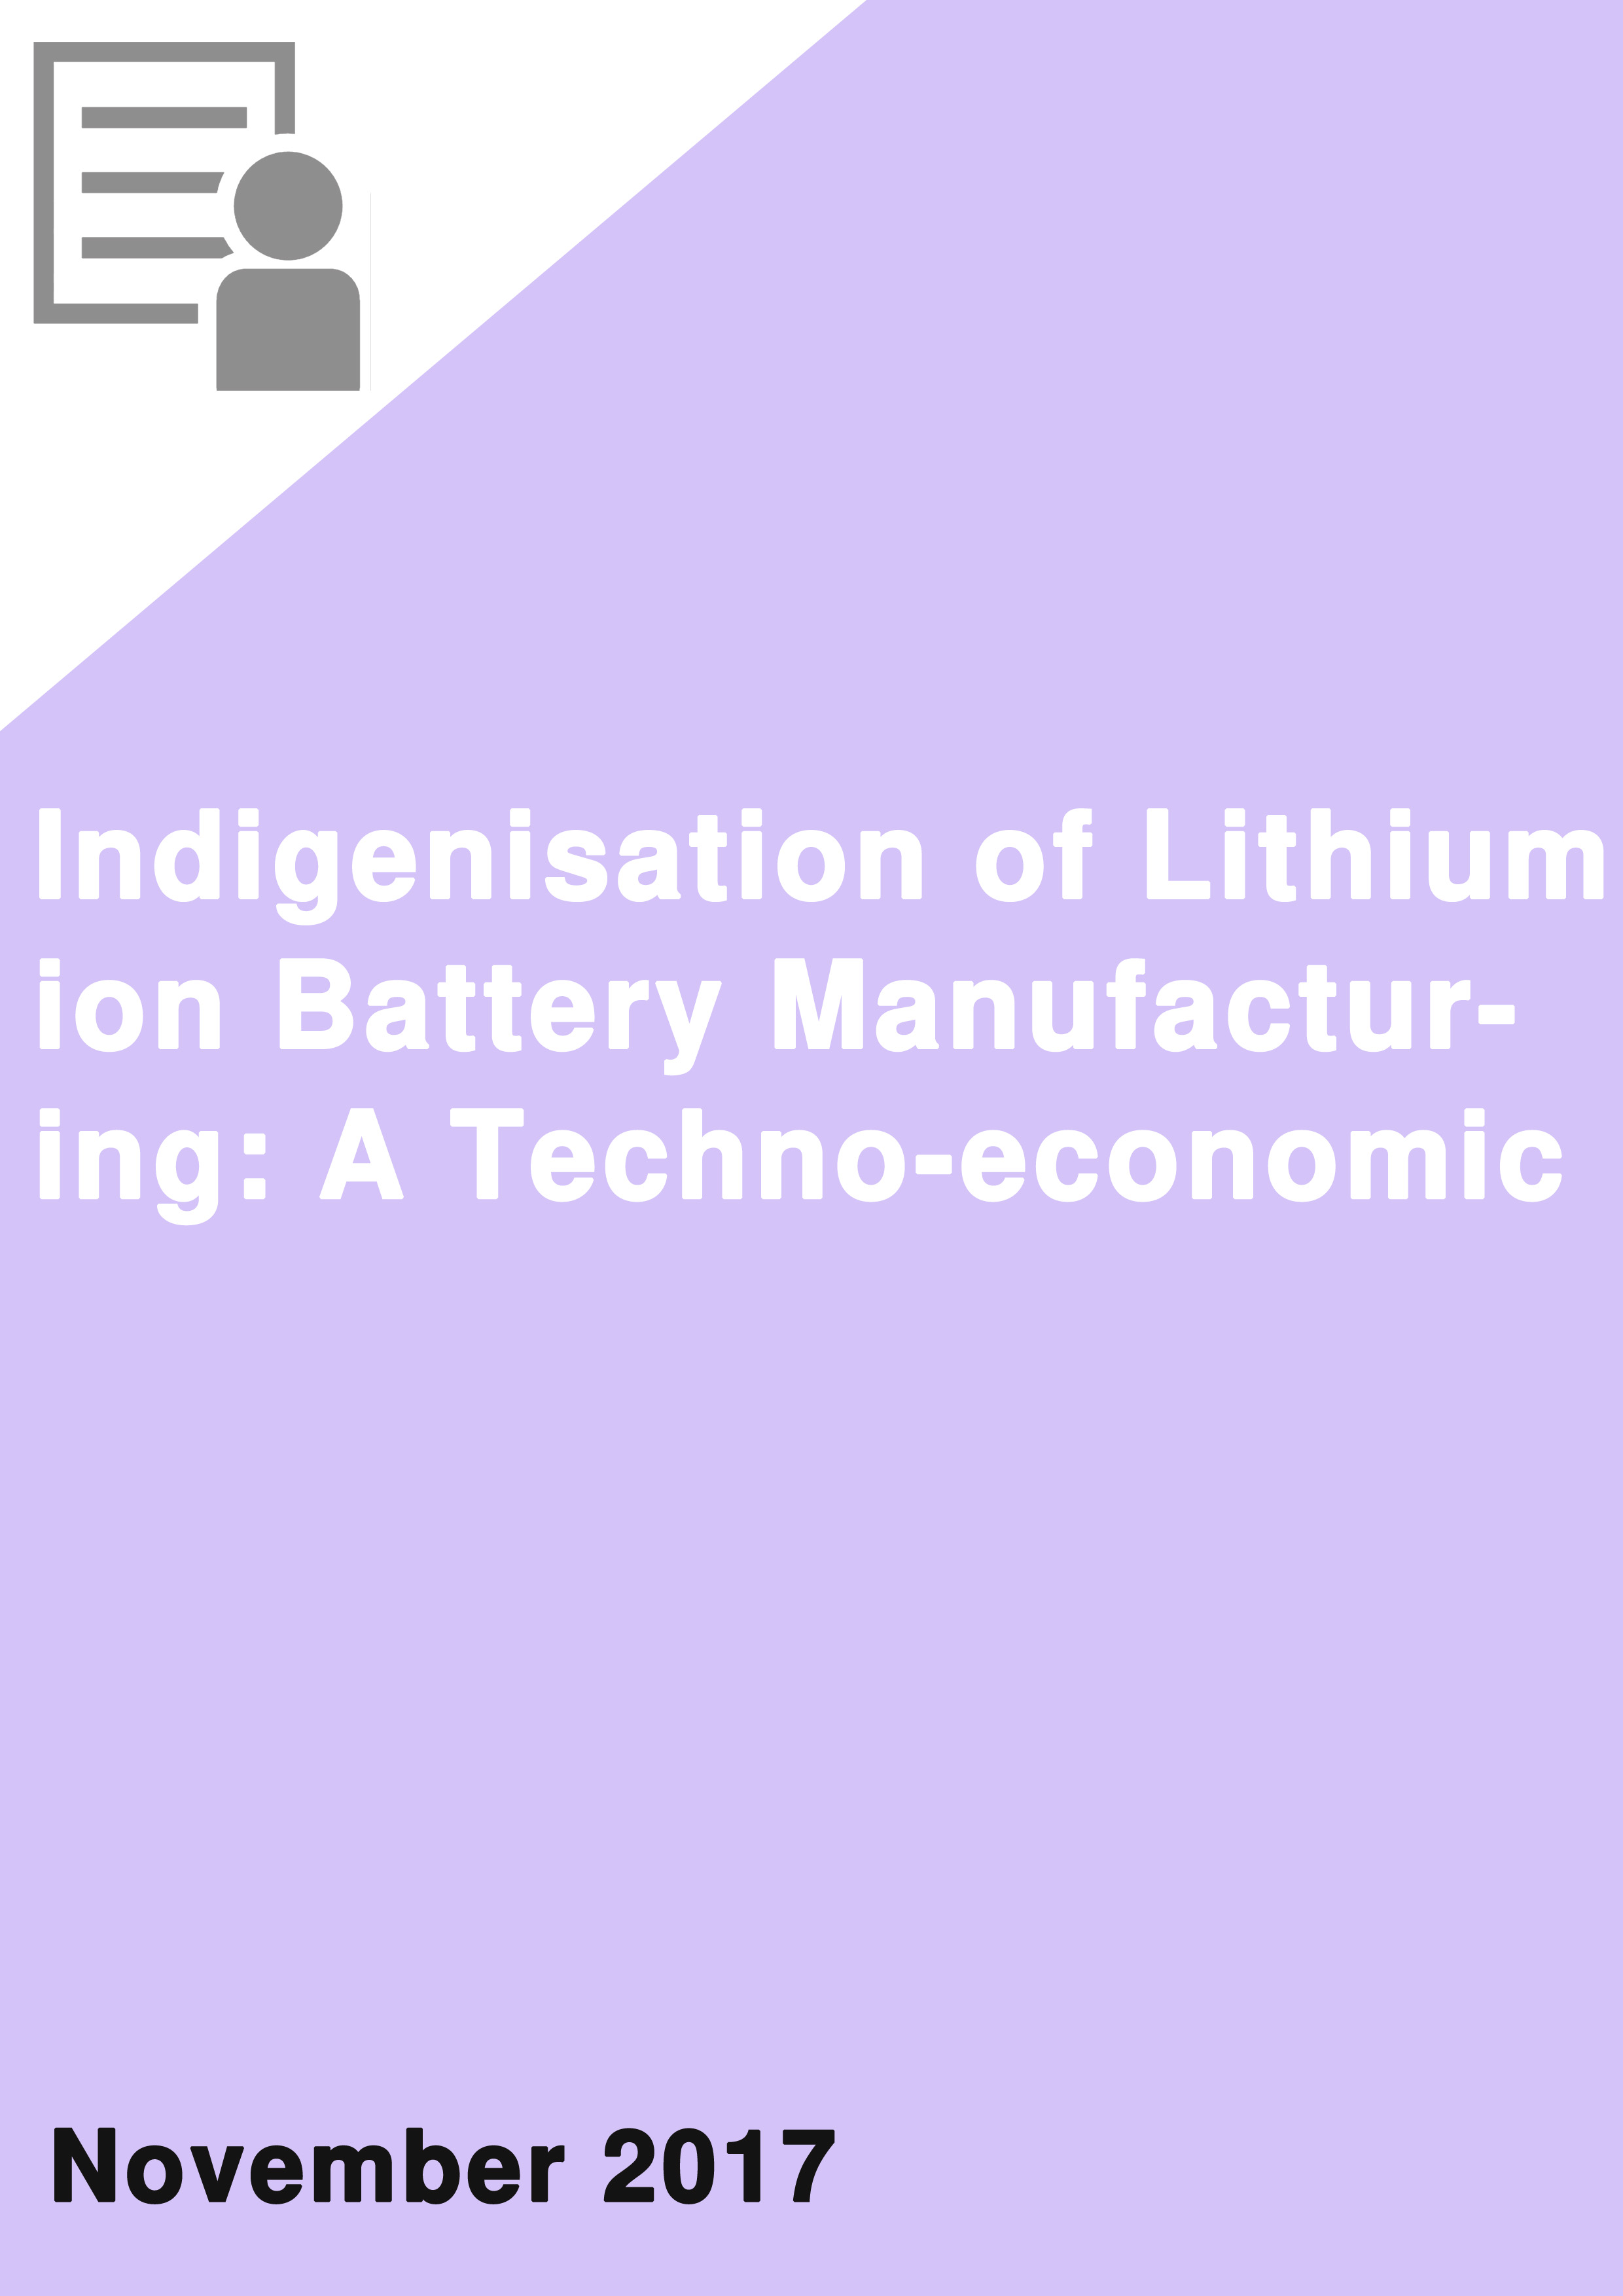 Indigenisation of Lithium ion Battery Manufacturing A Techno-economic Feasibility Assessment